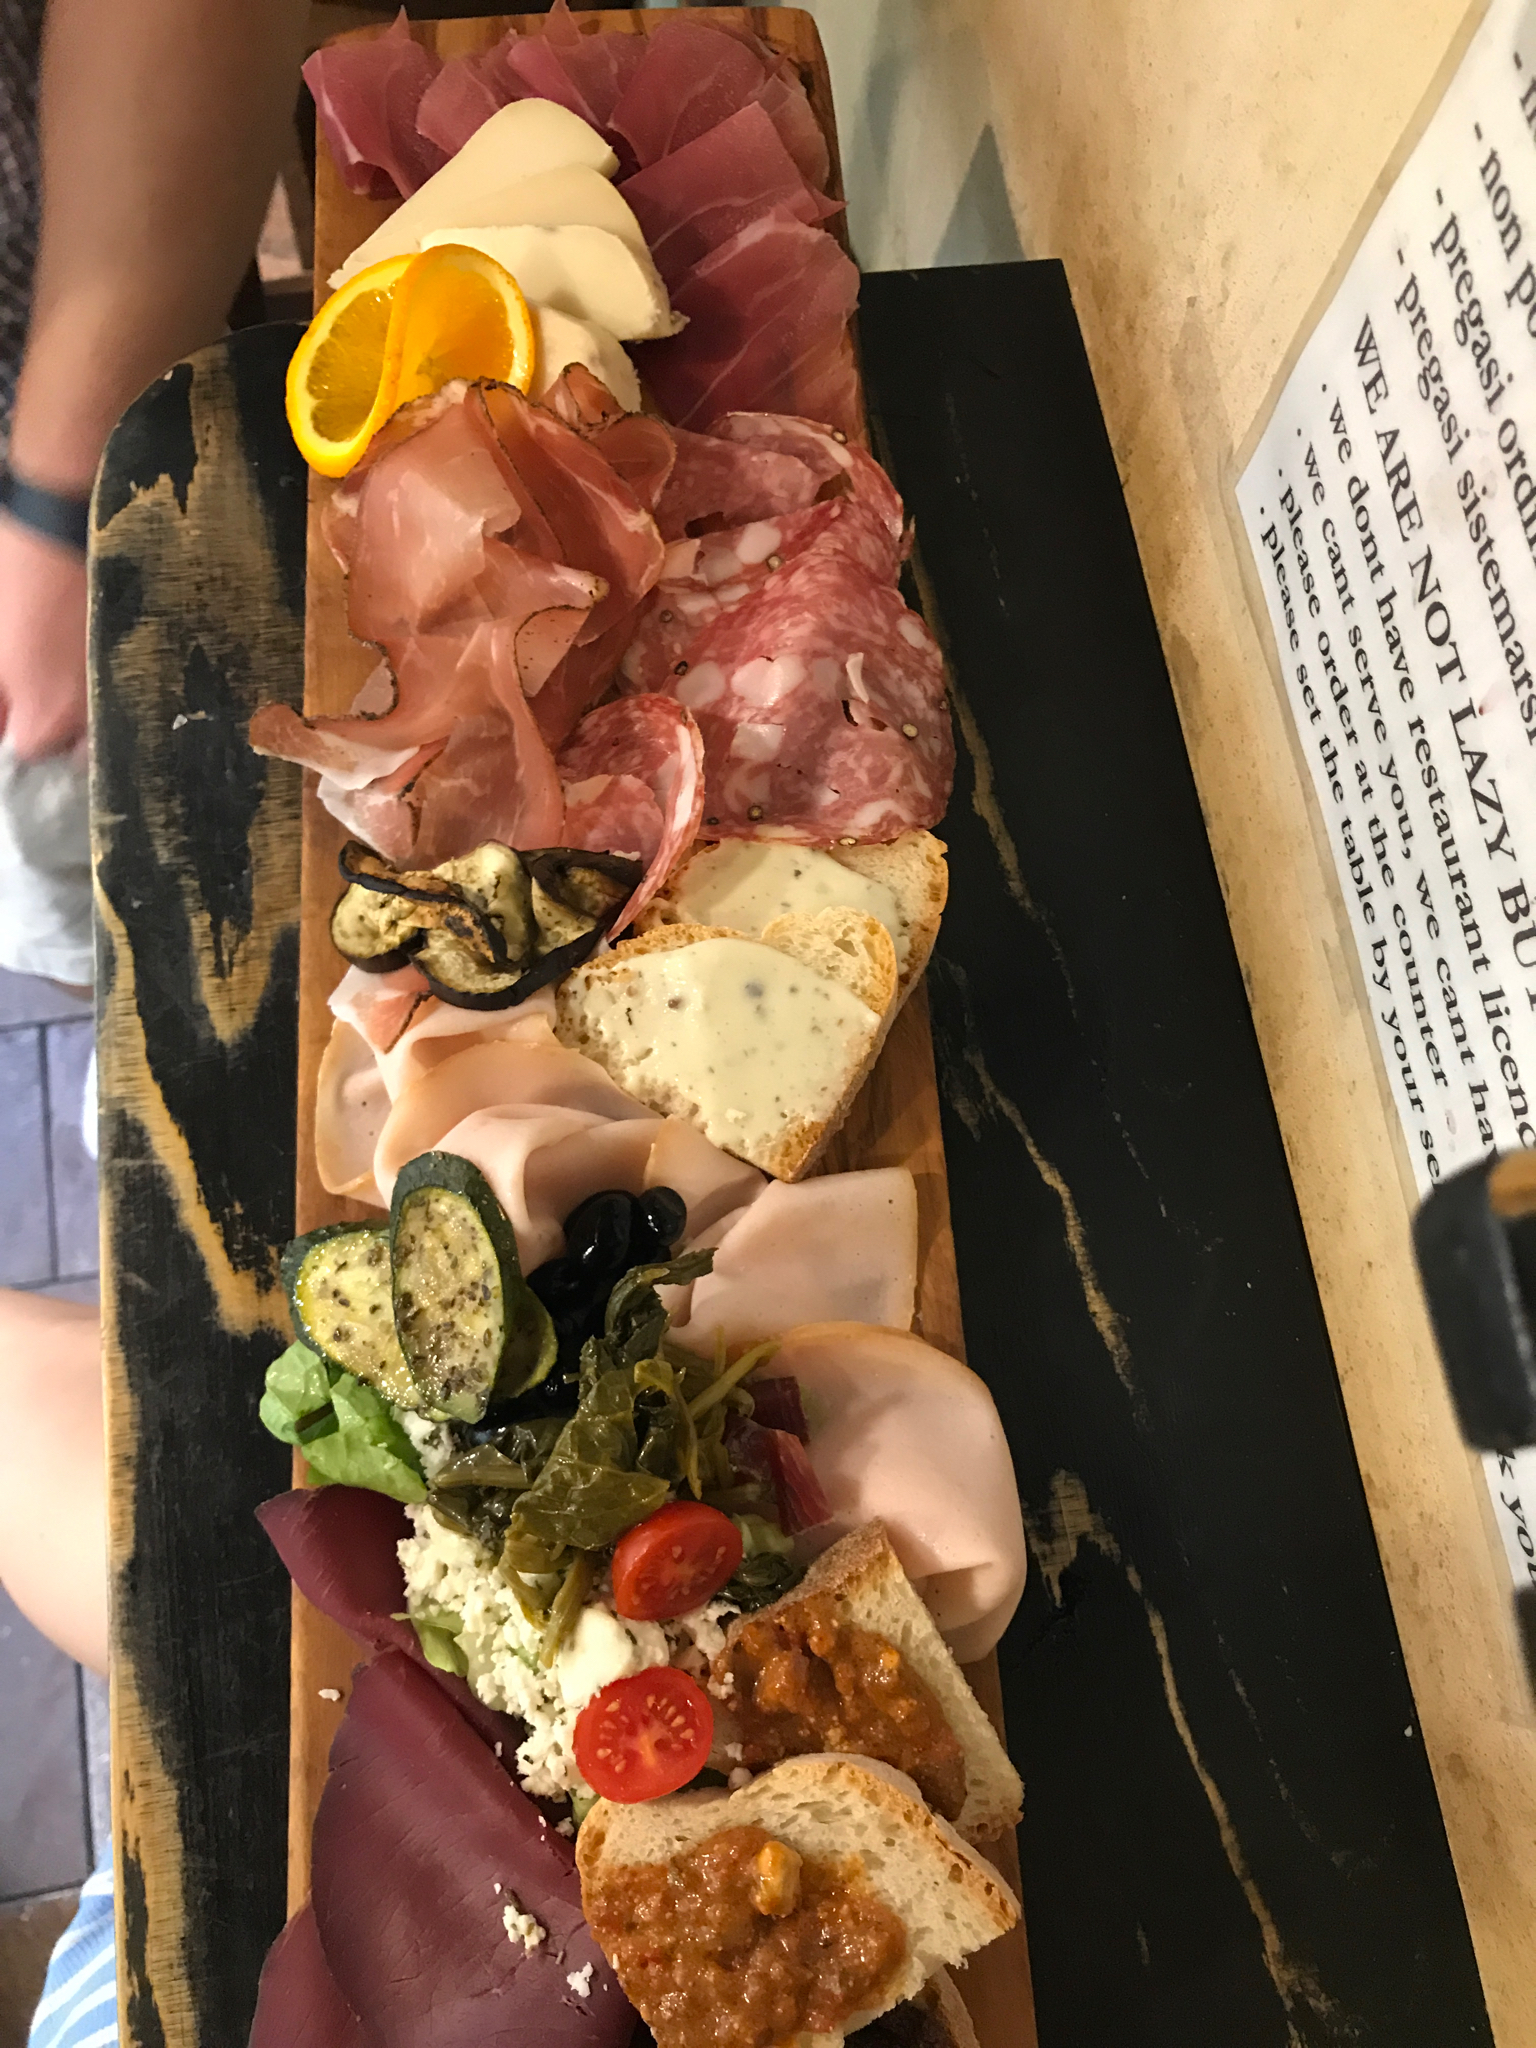 la procutteria trevi was the first place we ate in rome and it did NOT disappoint. build your own charcuterie plate HELLO THANK YOU. it was heaven.